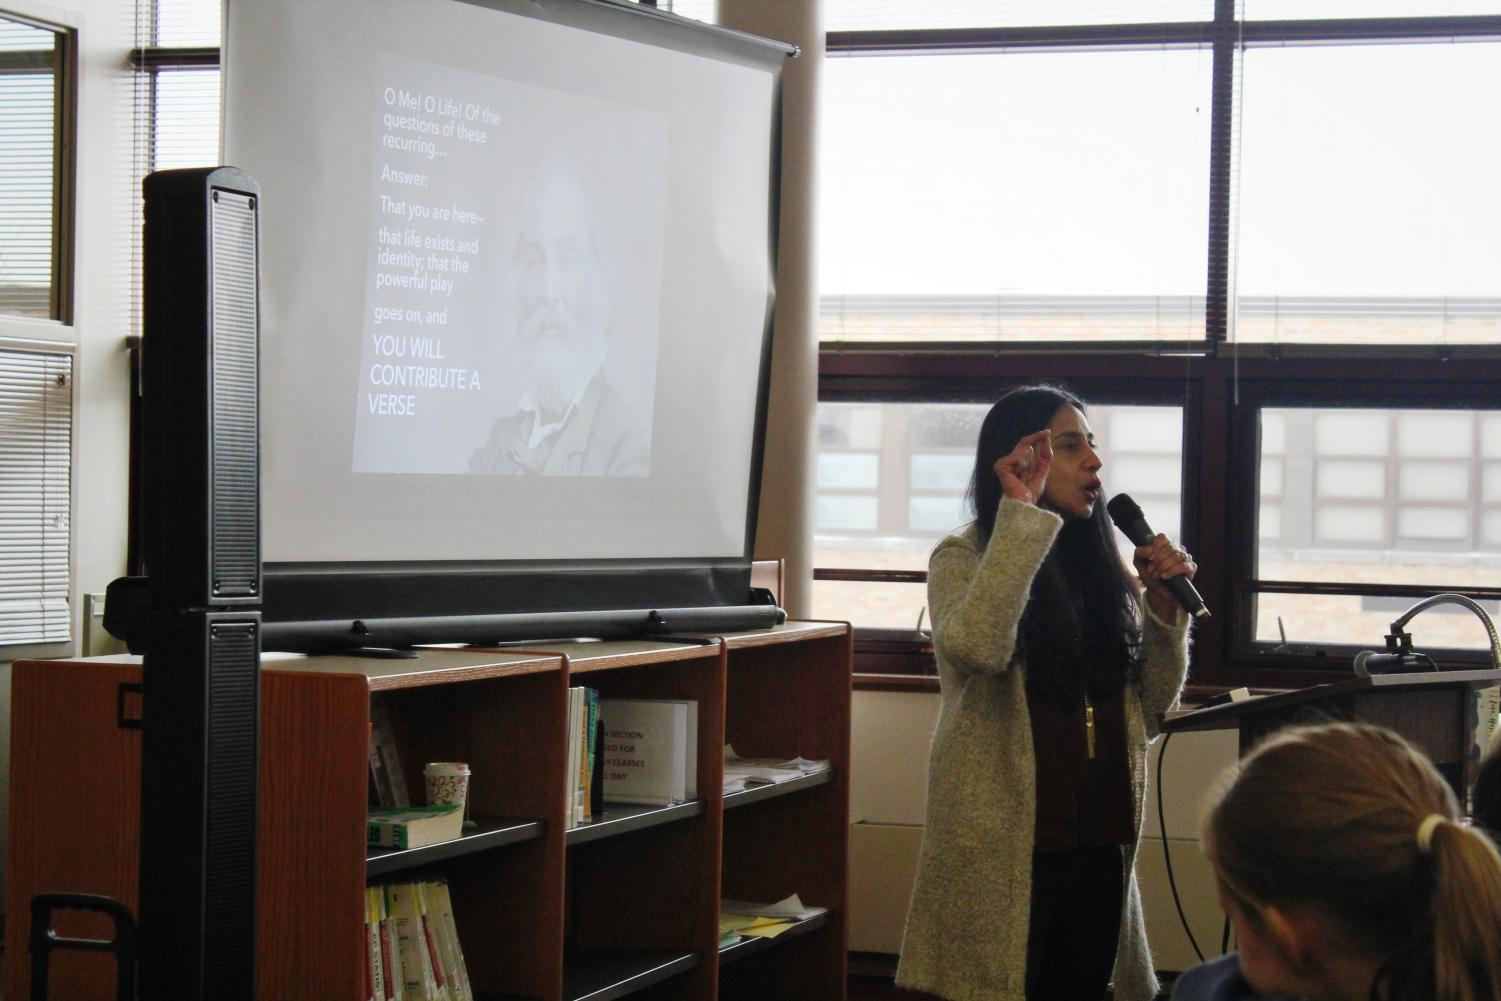 Author Samira Ahmed speaks to students in the library on Wednesday, Nov. 13. She talked about her journey of become a writer, as well as gave tips to students who may be interested in a similar career path.